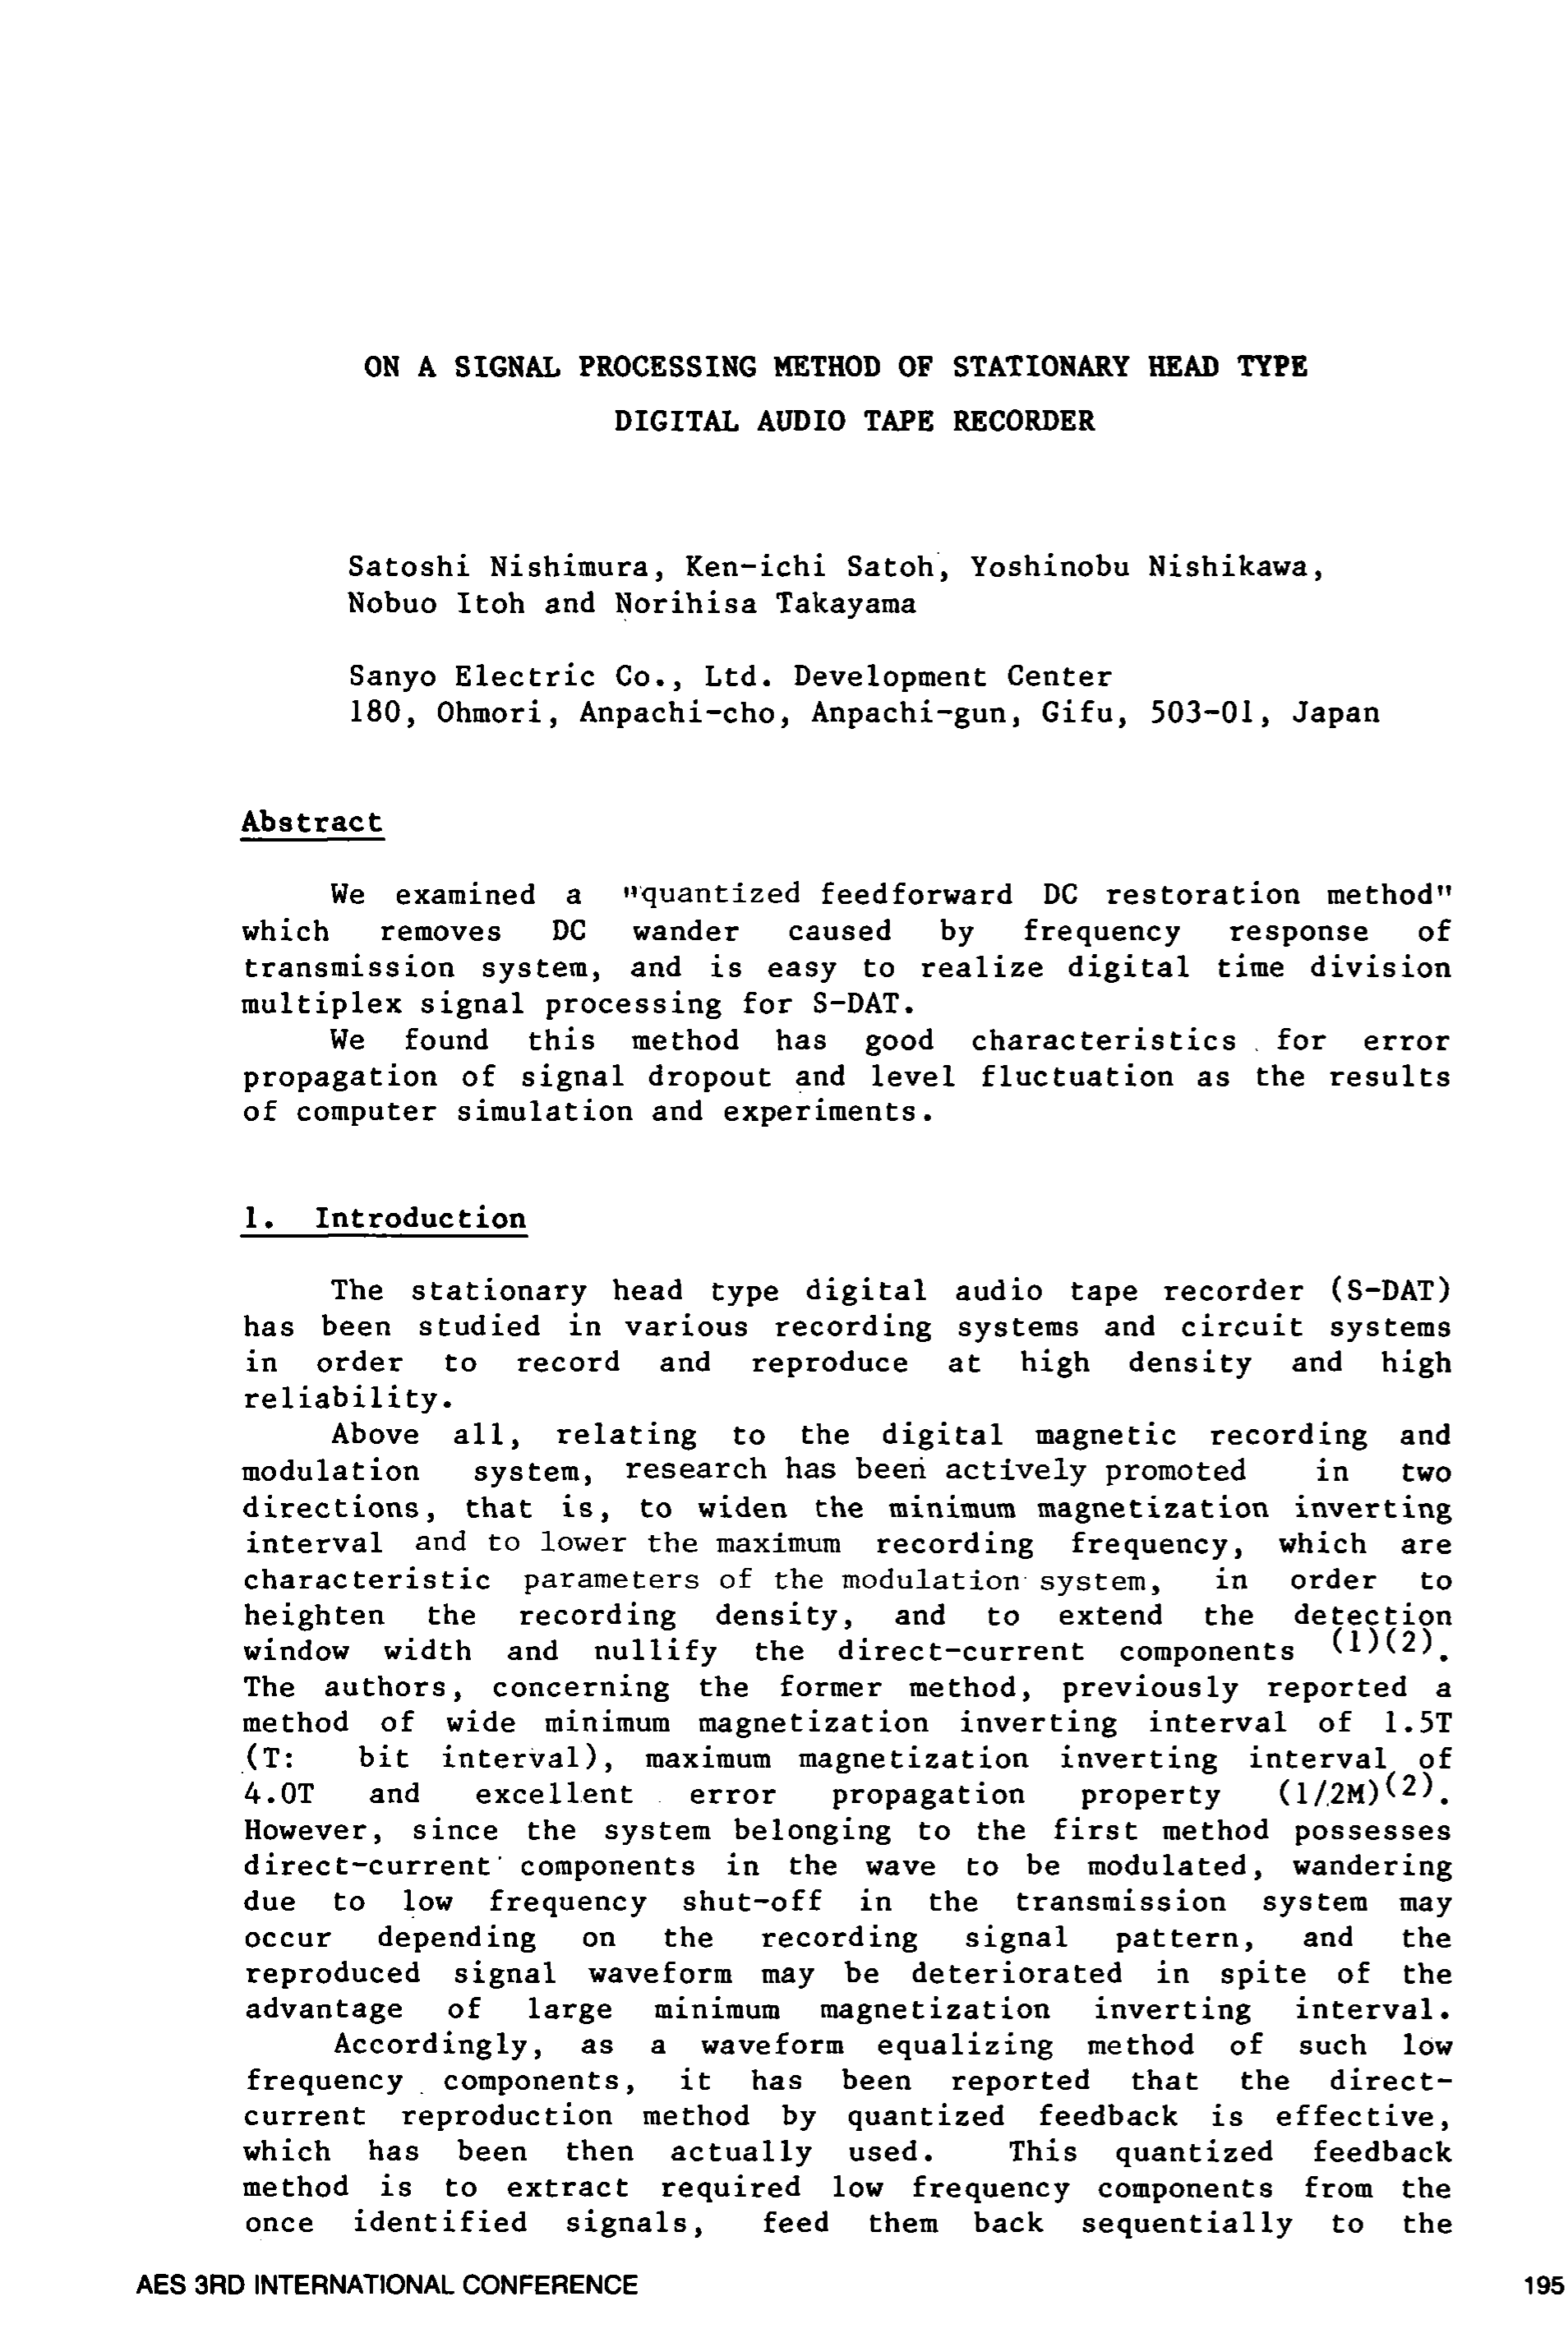 AES E-Library » On a Signal Processing Method of Stationary Head ...